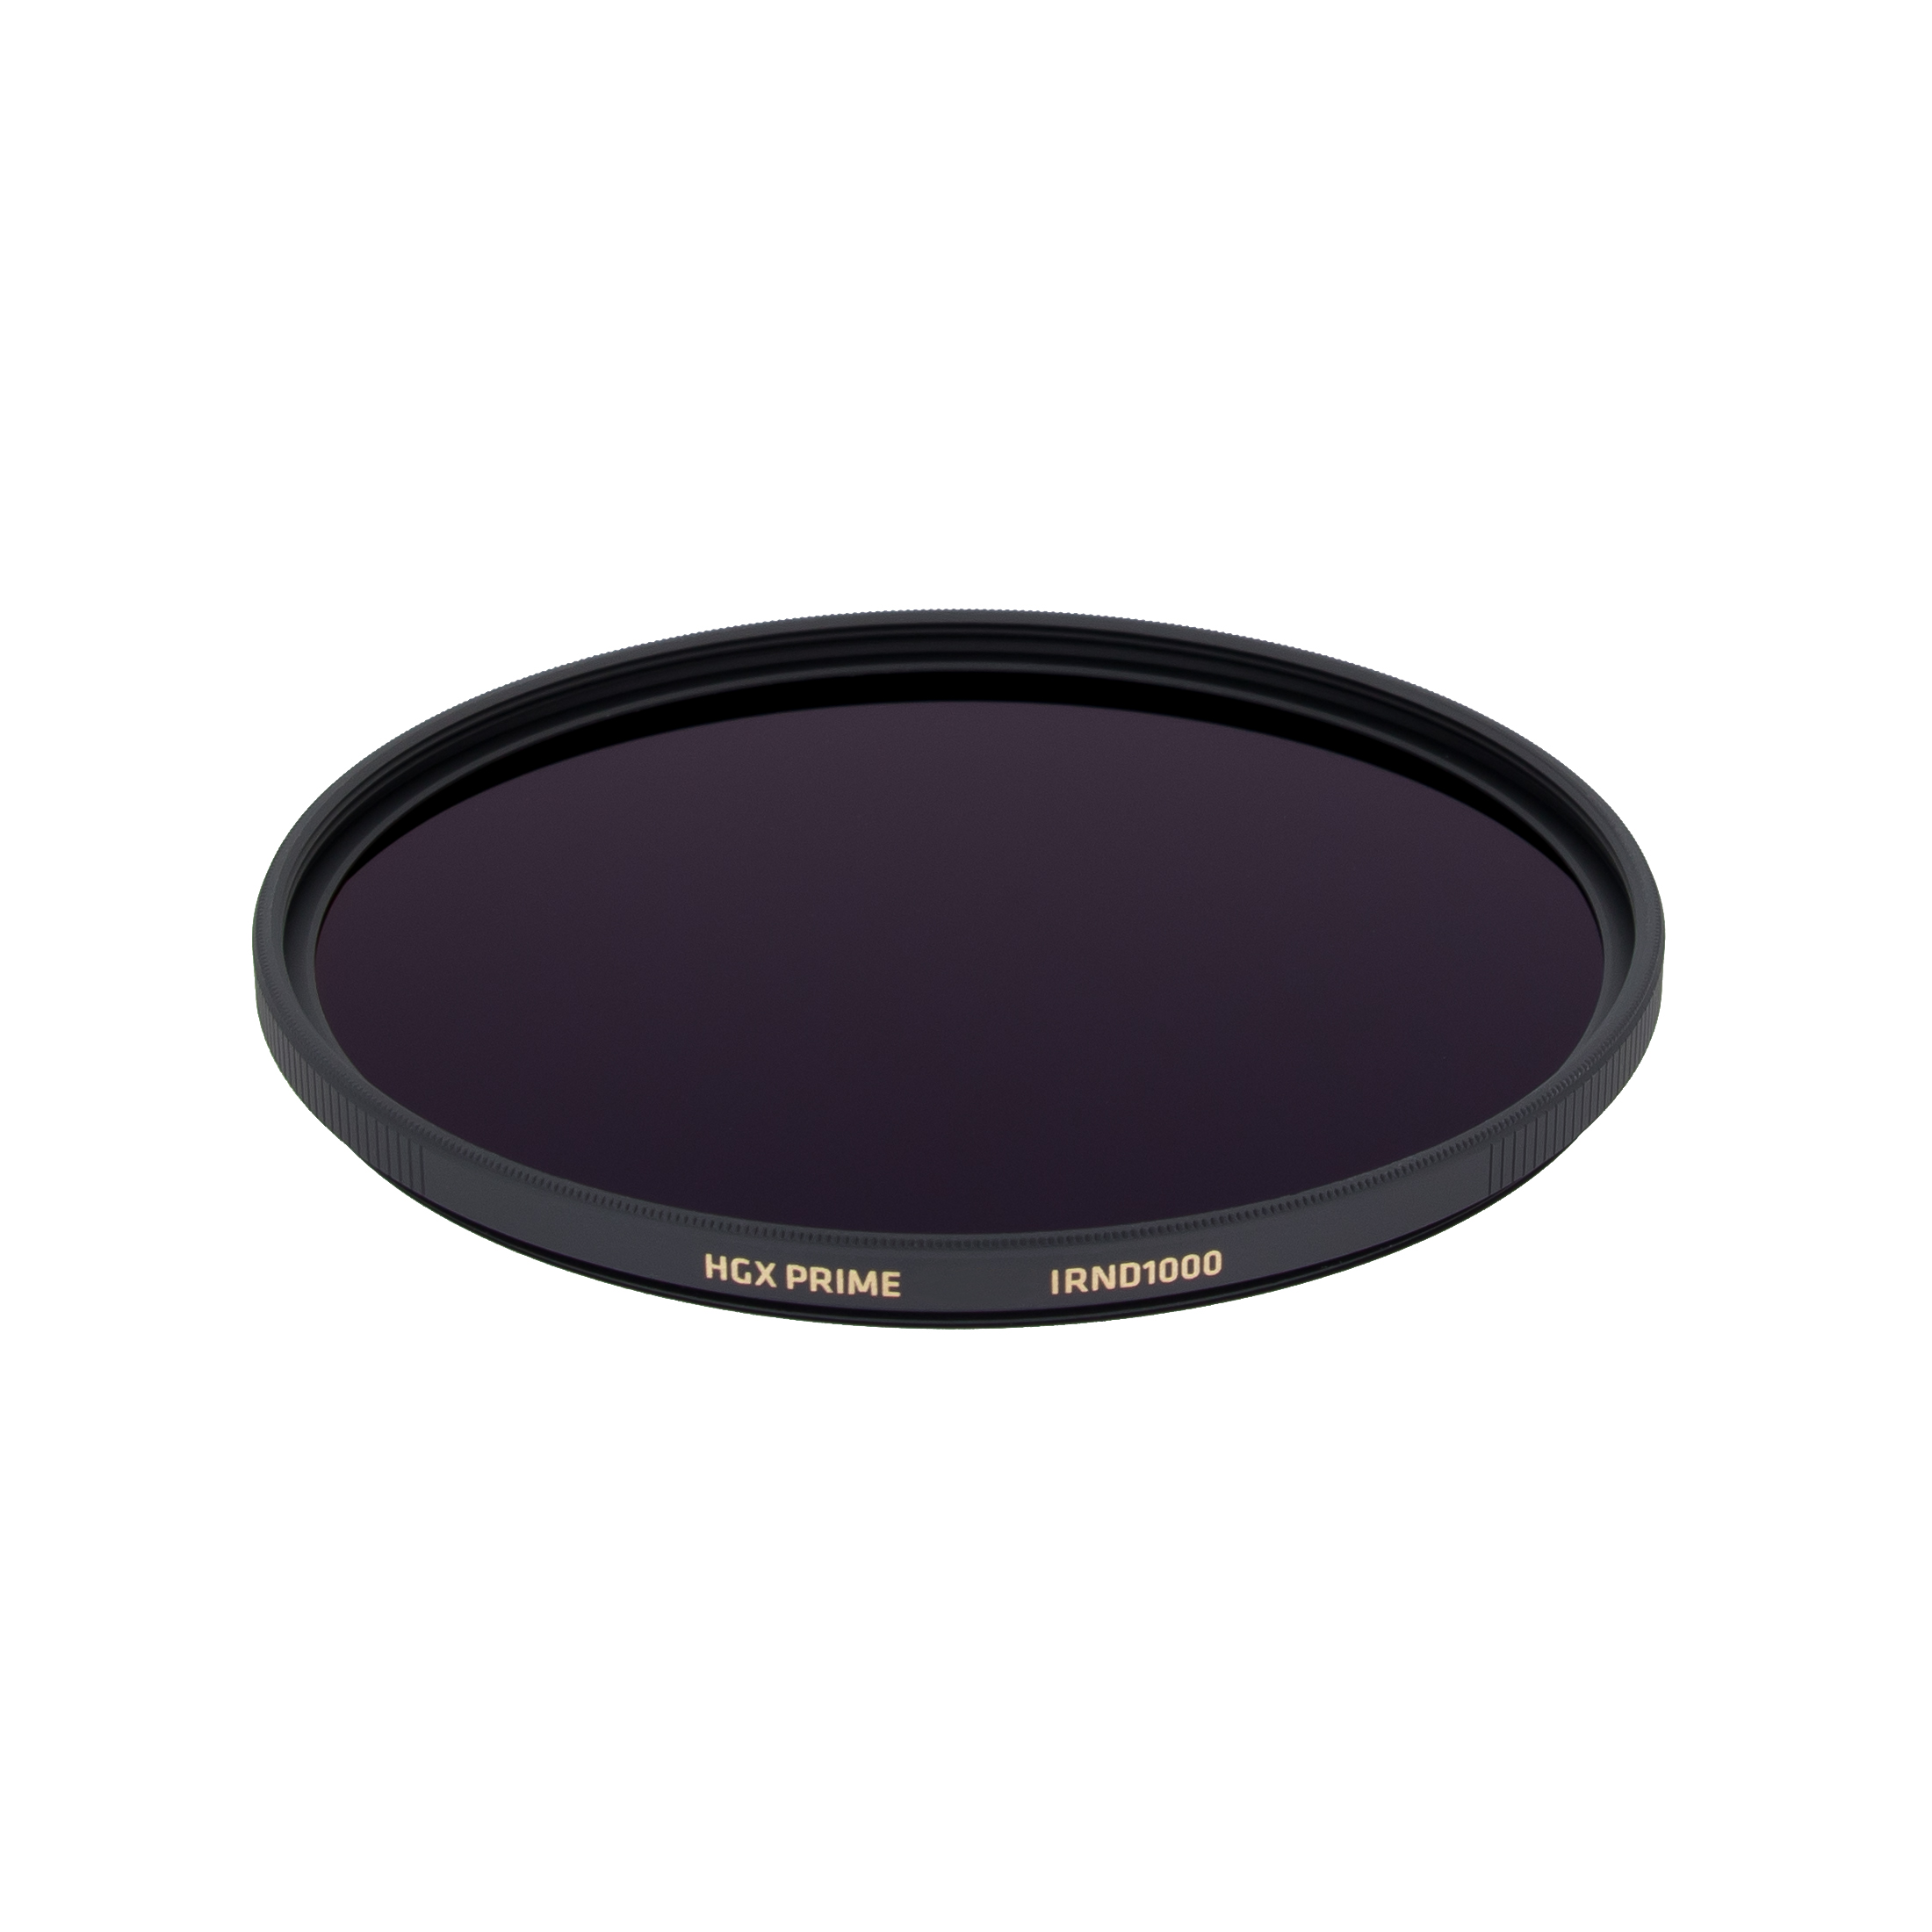 Promaster 6313 105mm IRND1000X HGX Prime Filter